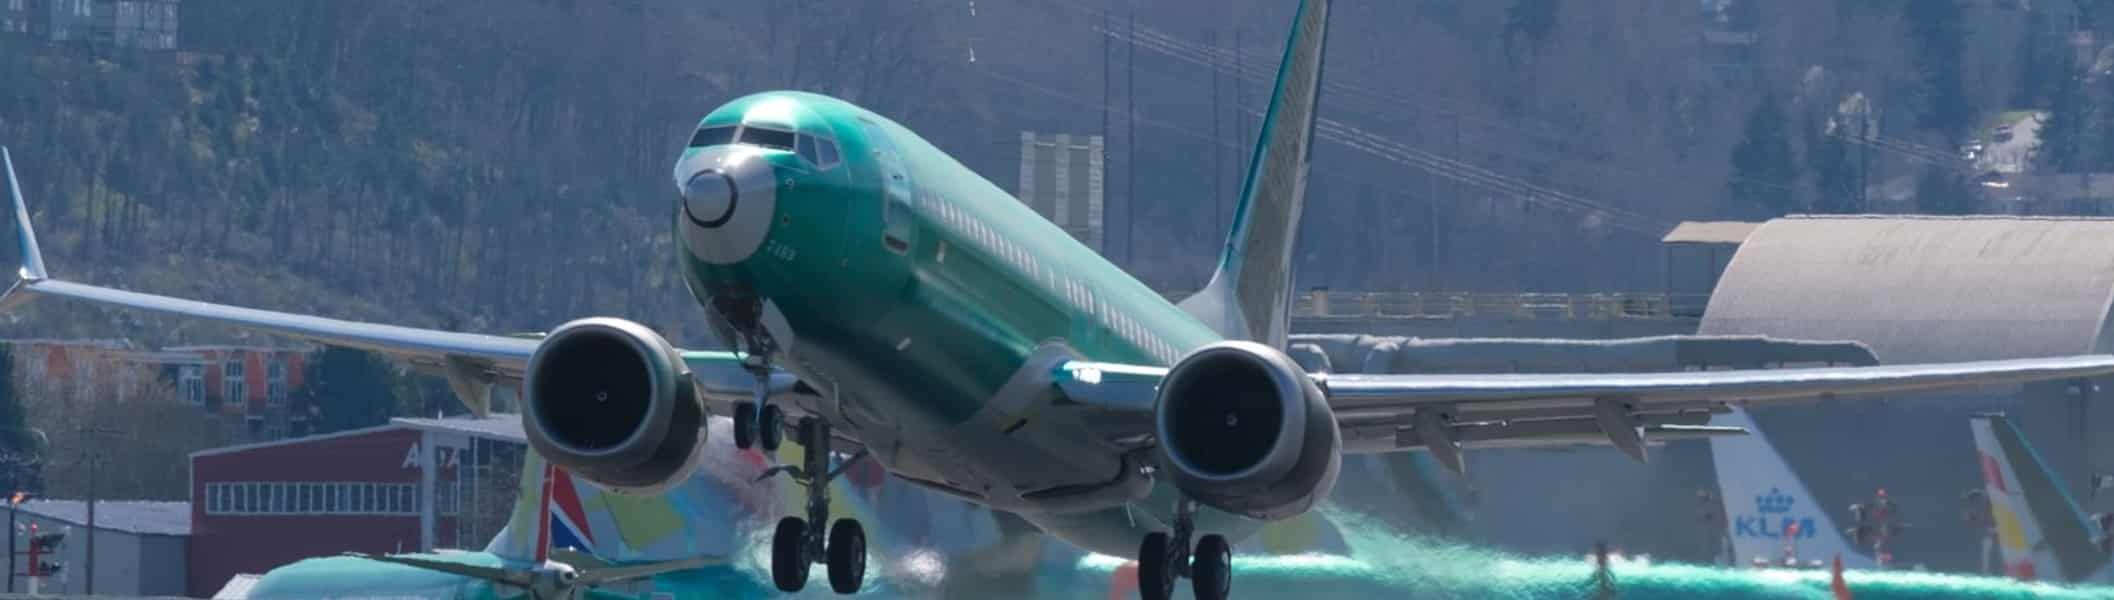 Boeing 737 MAX Schedule Likely To Slip